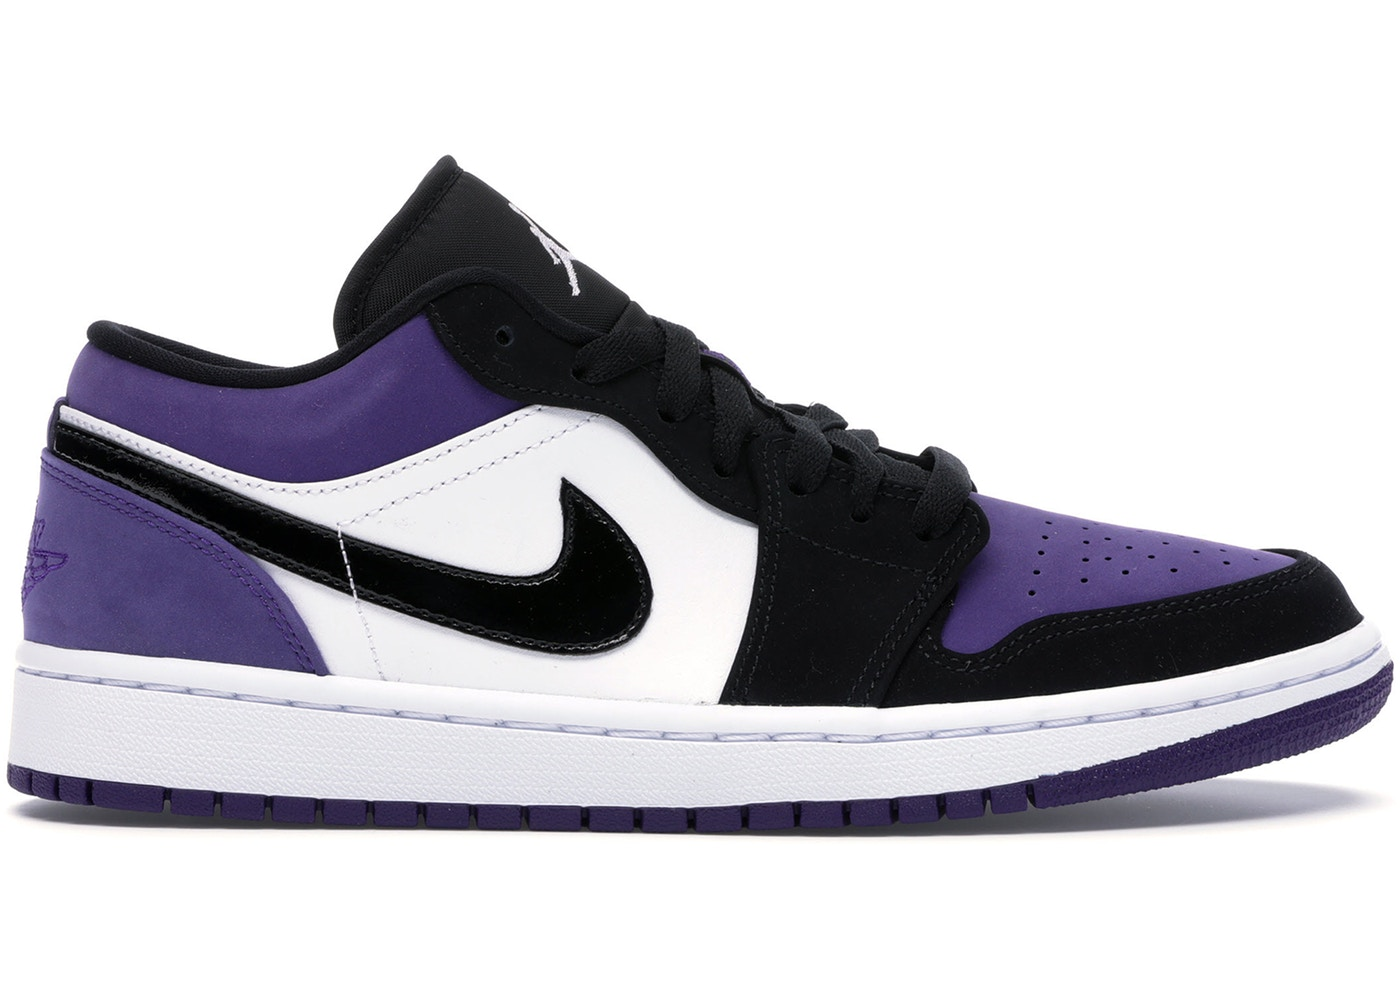 ジョーダン メンズ レトロ Air Jordan Mid Retro 1 Low スニーカー White/Black/Court Purple